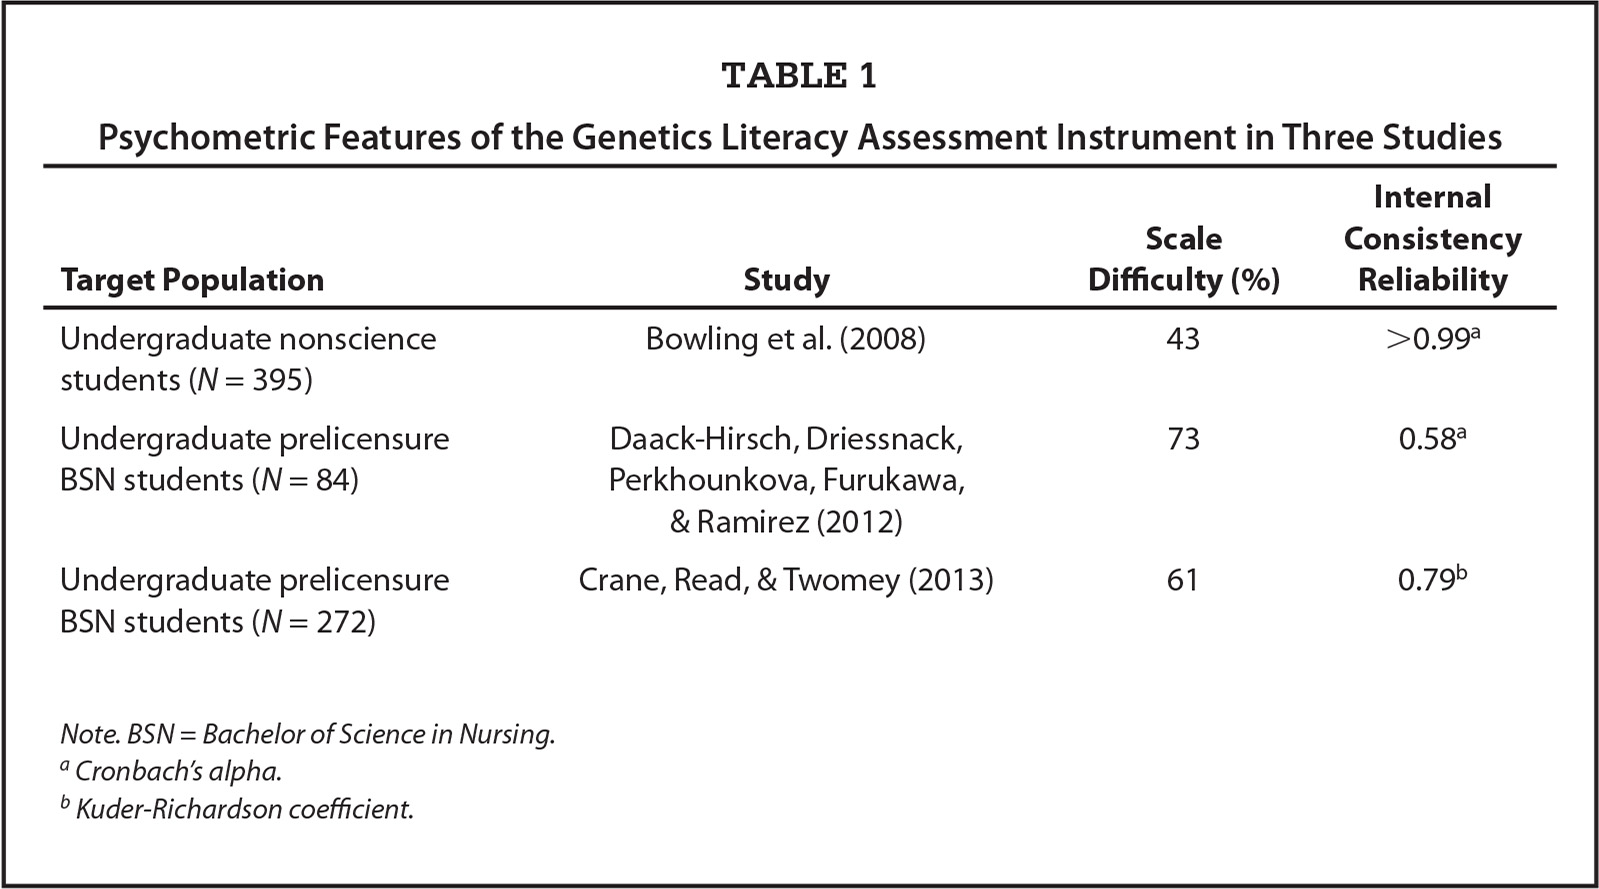 Psychometric Features of the Genetics Literacy Assessment Instrument in Three Studies